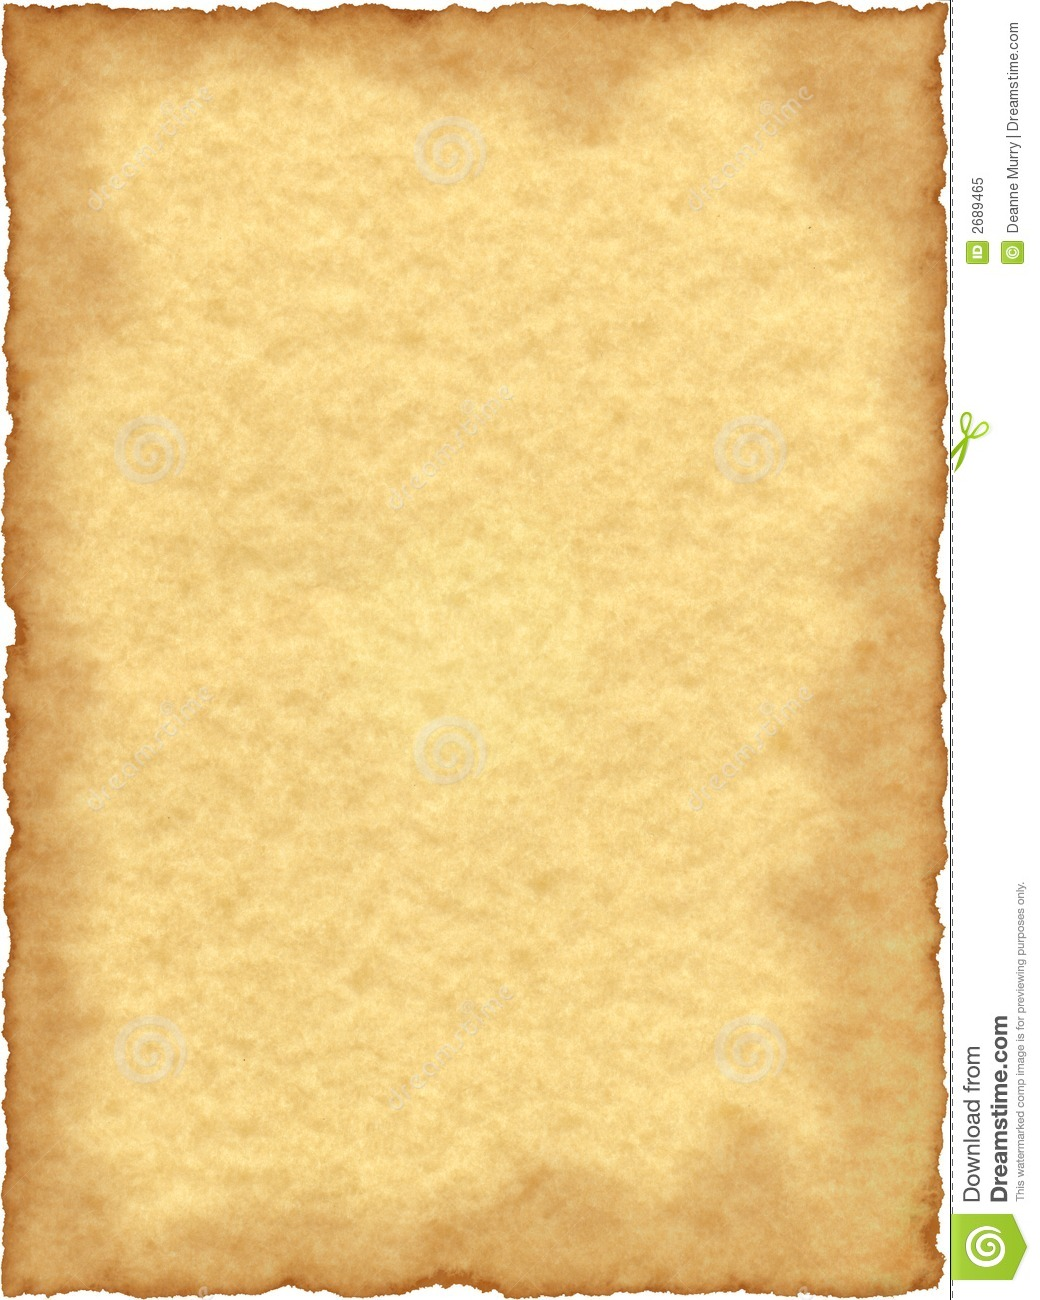 printable handwriting paper  Donna Young